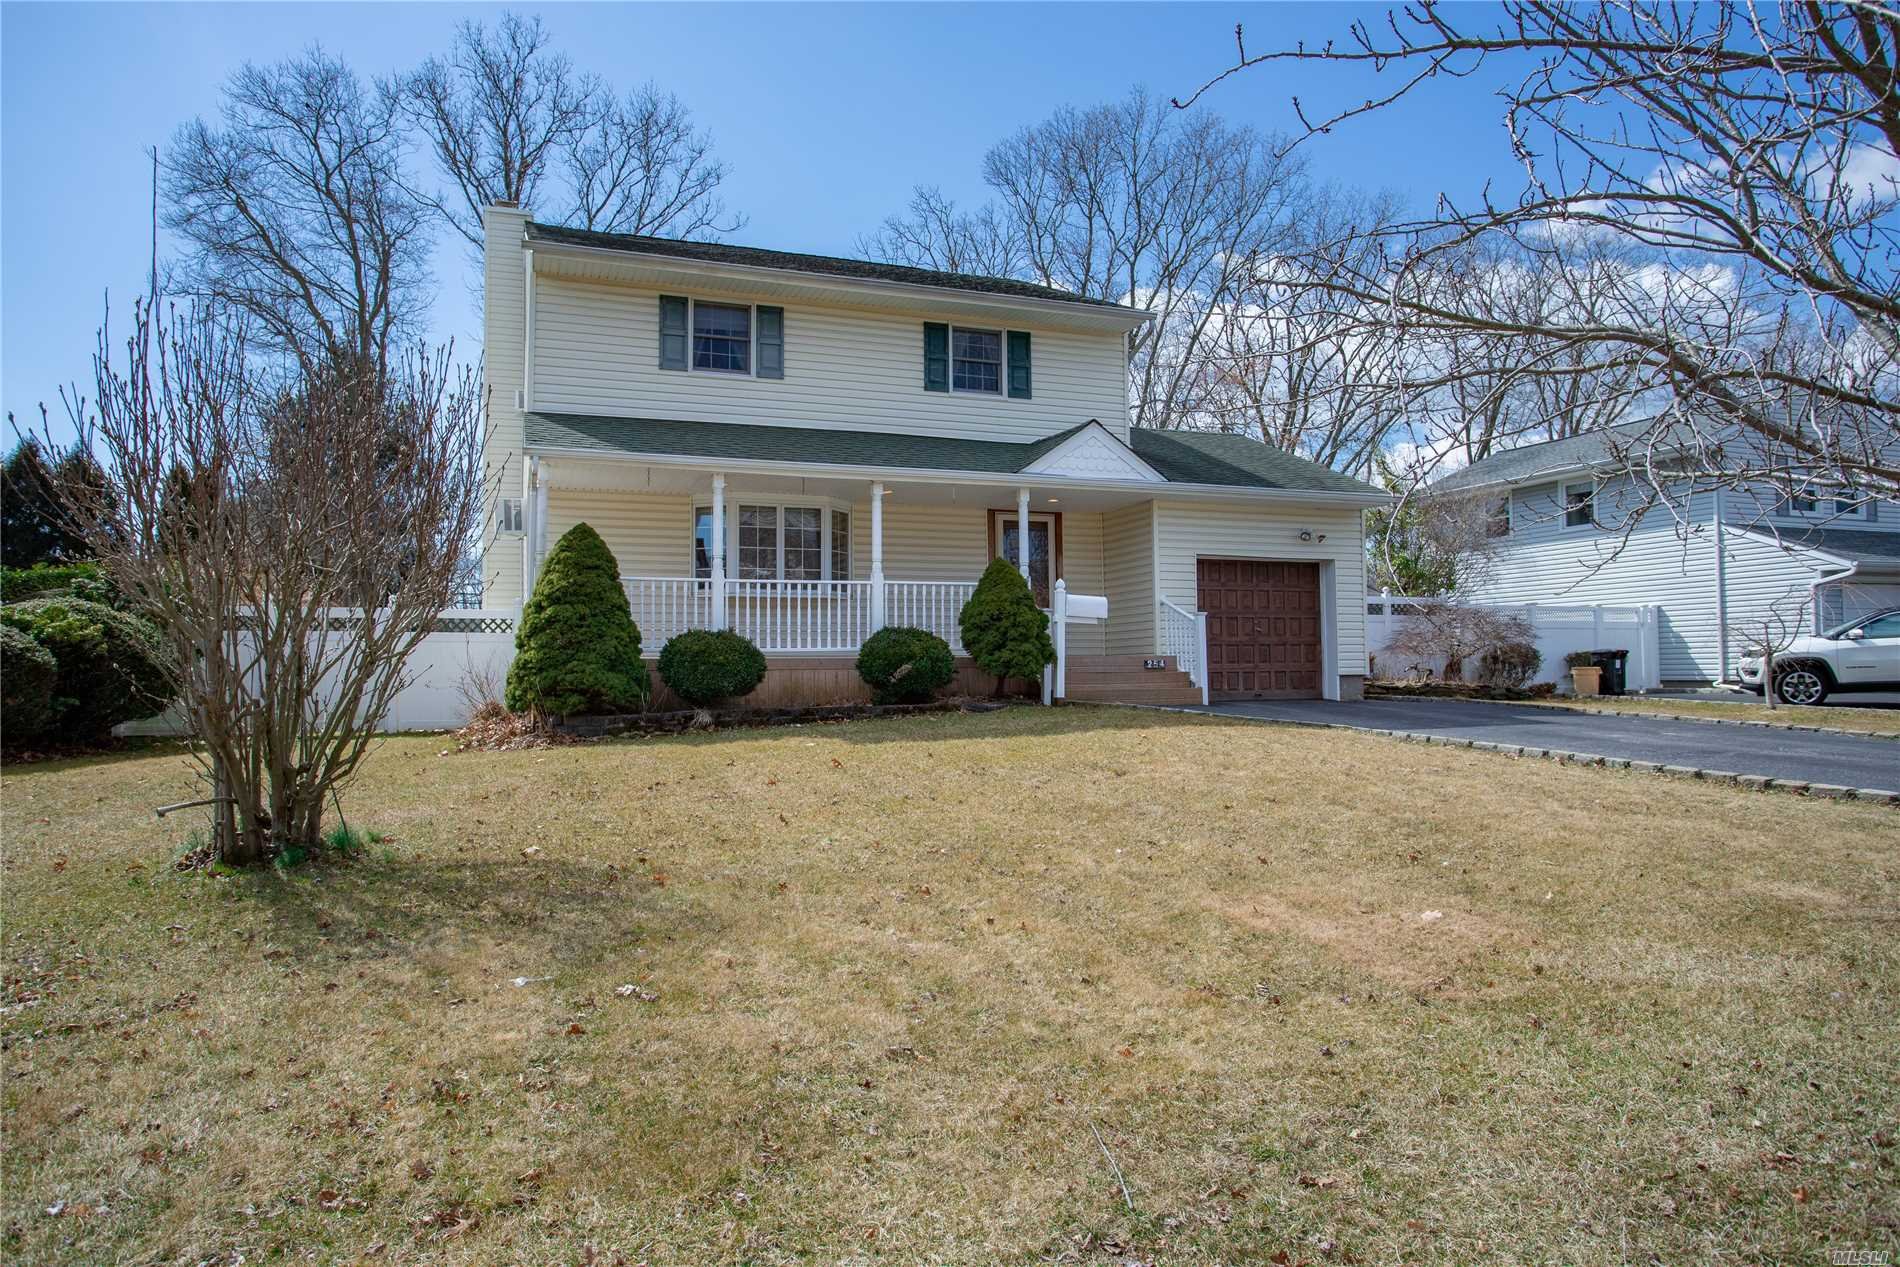 Outstanding 3 BR Country Village Colonial! Many Updates Include Newer Roof, Deck, Windows, Updated EIK w/ SS Appliances, Mostly HW Floors, Fin. Basement W/ Storage And Laundry. Prof. Maintained Fenced Yard W/Irrig System. Superb Location 1 Block From Timber Point Elementary And Fields. Close To Heckscher State Park, Timber Point Golf And Much More!